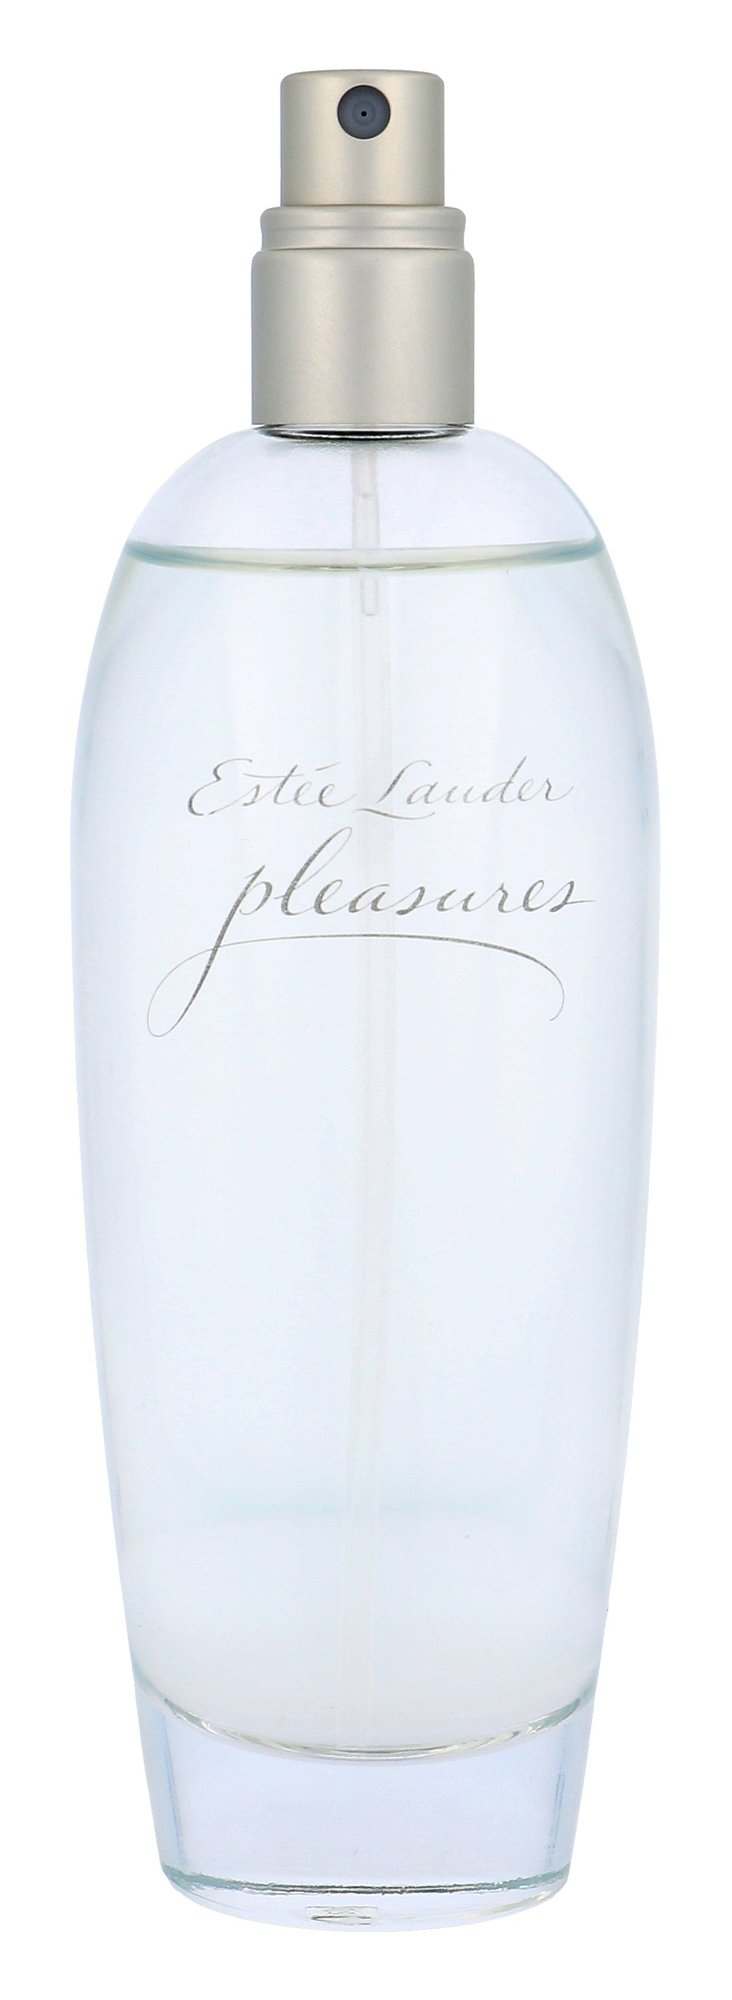 Estée Lauder Pleasures EDP 100ml